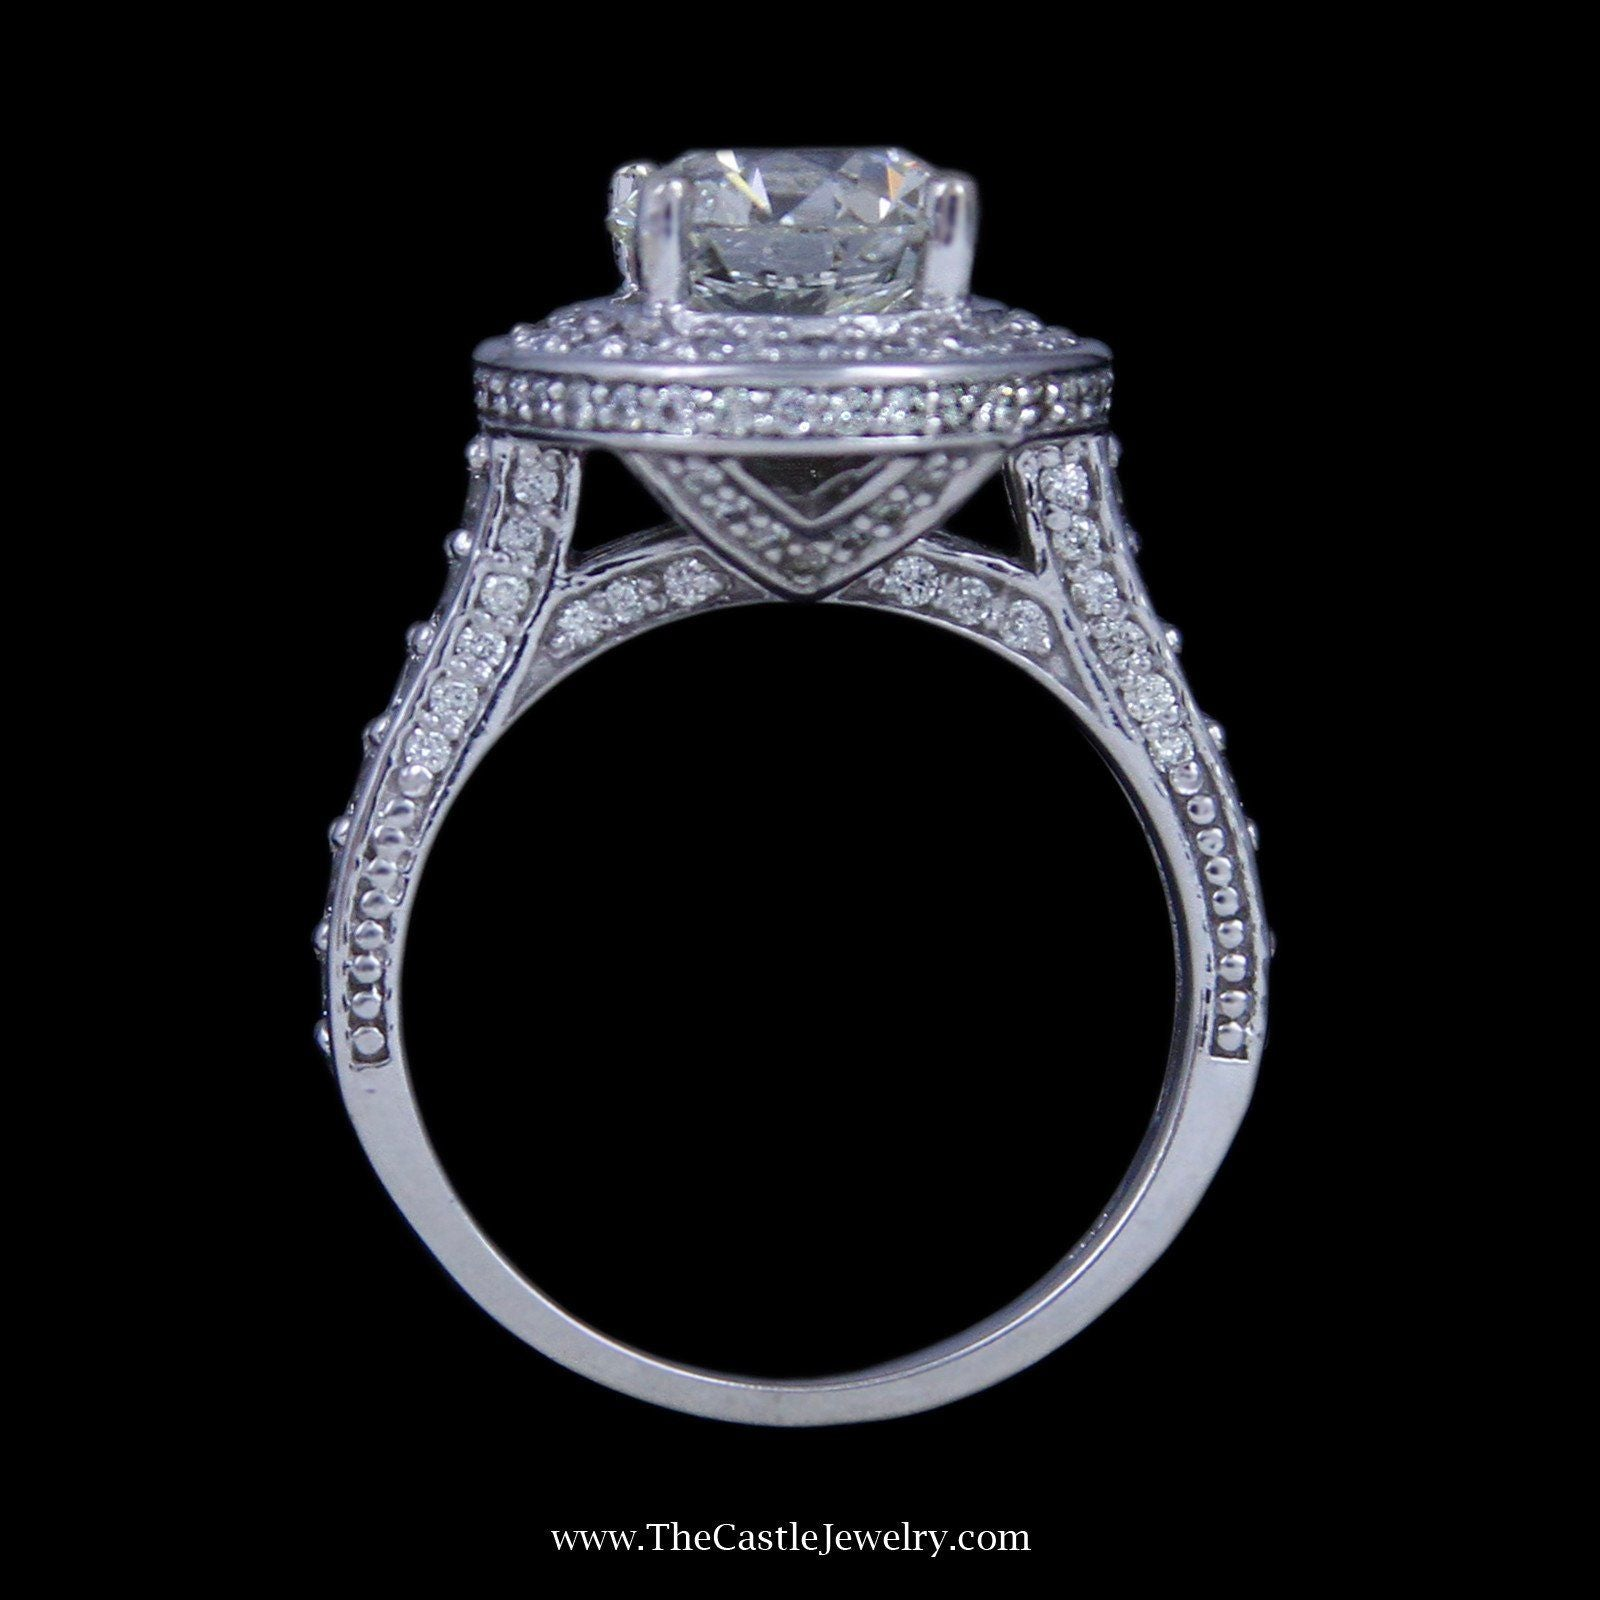 2.02ct Princess Diamond Engagement Ring w/ Round Brilliant Cut Diamond Bezel & Sides in 14k-1